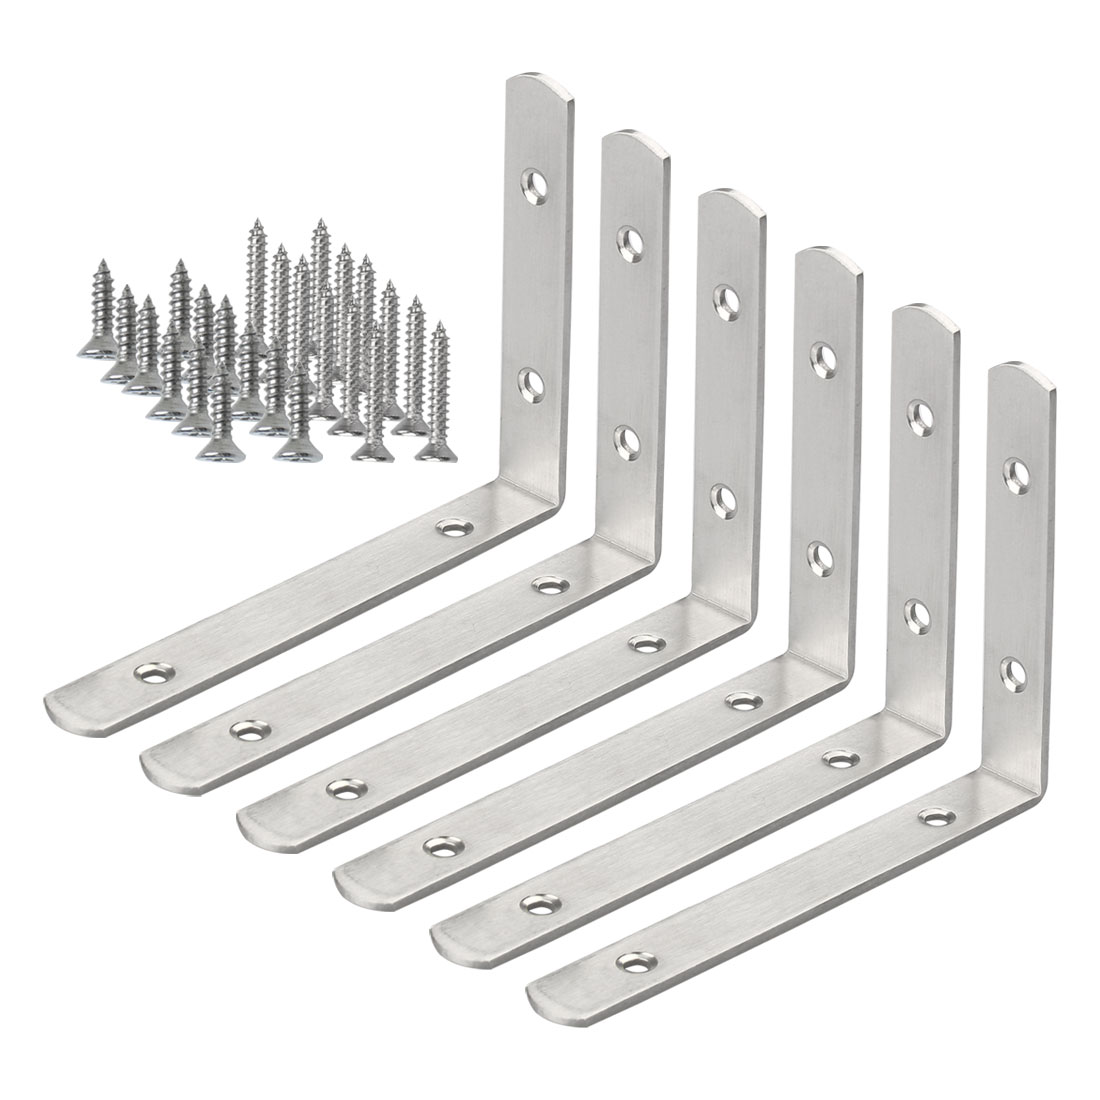 Angle Bracket Stainless Steel Brace Fastener Support w Screws 150 x 110mm, 6pcs